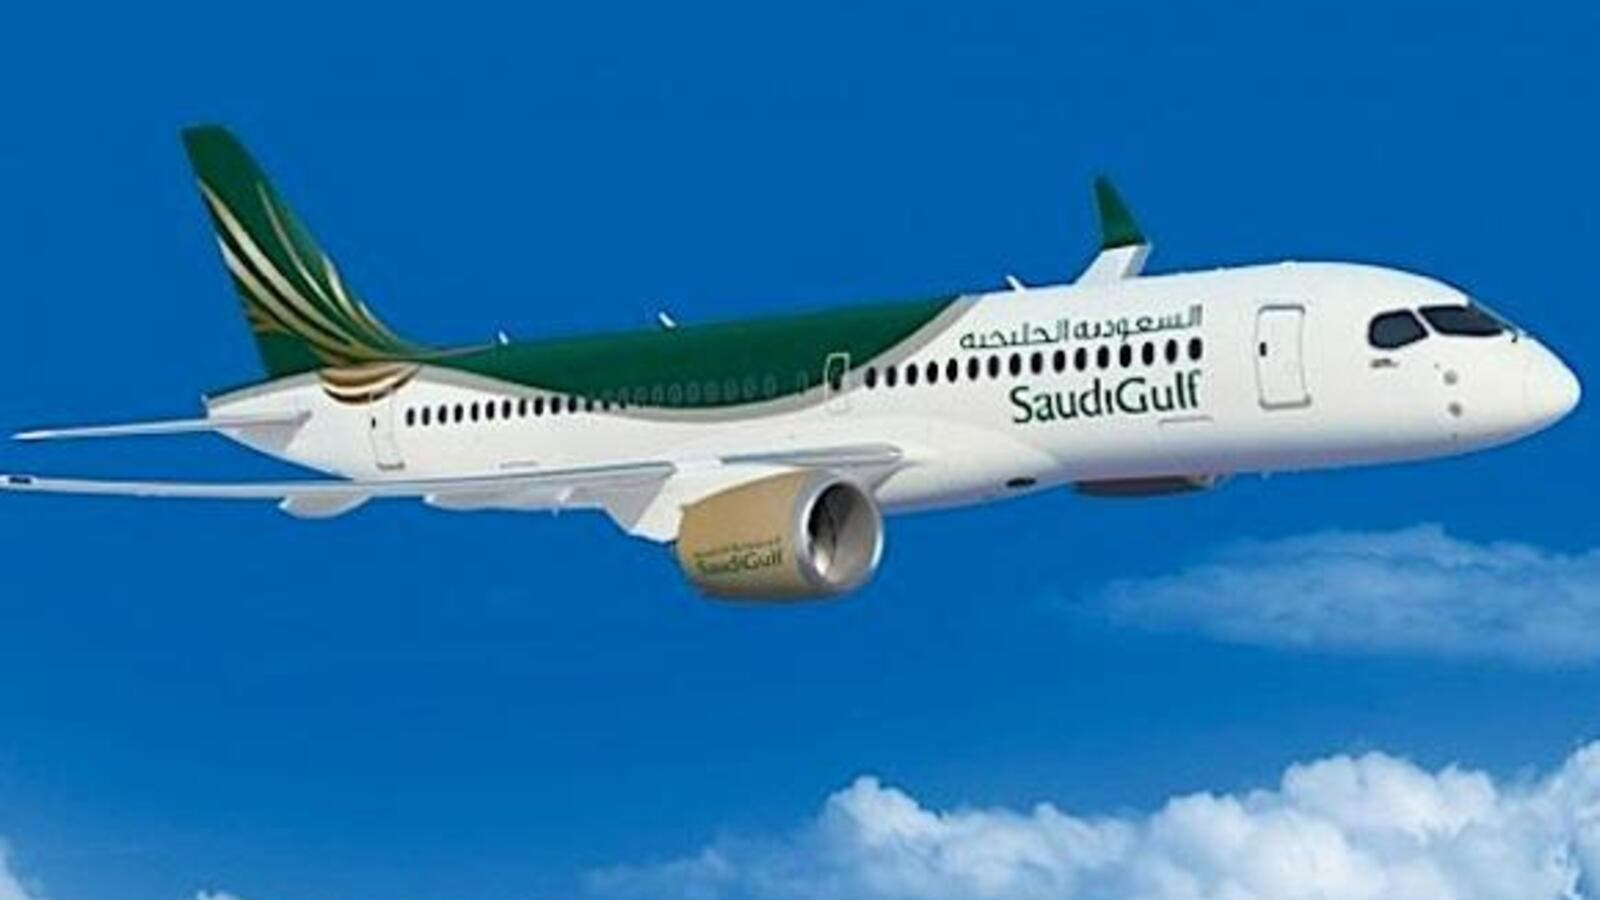 SaudiGulf Airlines  said the Riyadh operations will be followed by two daily flights to Jeddah starting from November 27. (File photo)